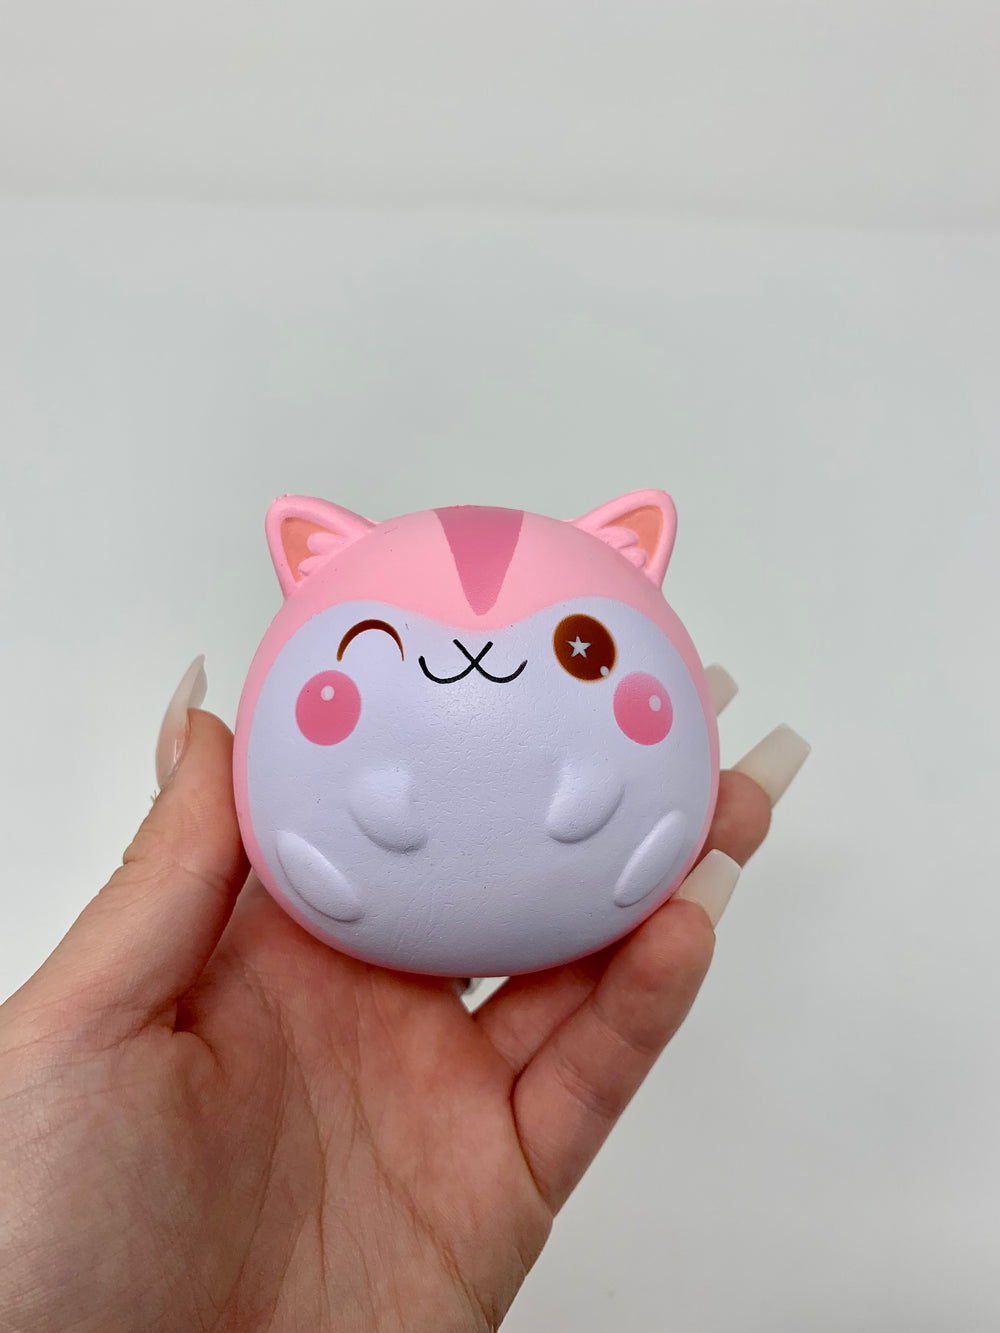 Mini Baby Poli Fat Fat Squishy pink version held in hand